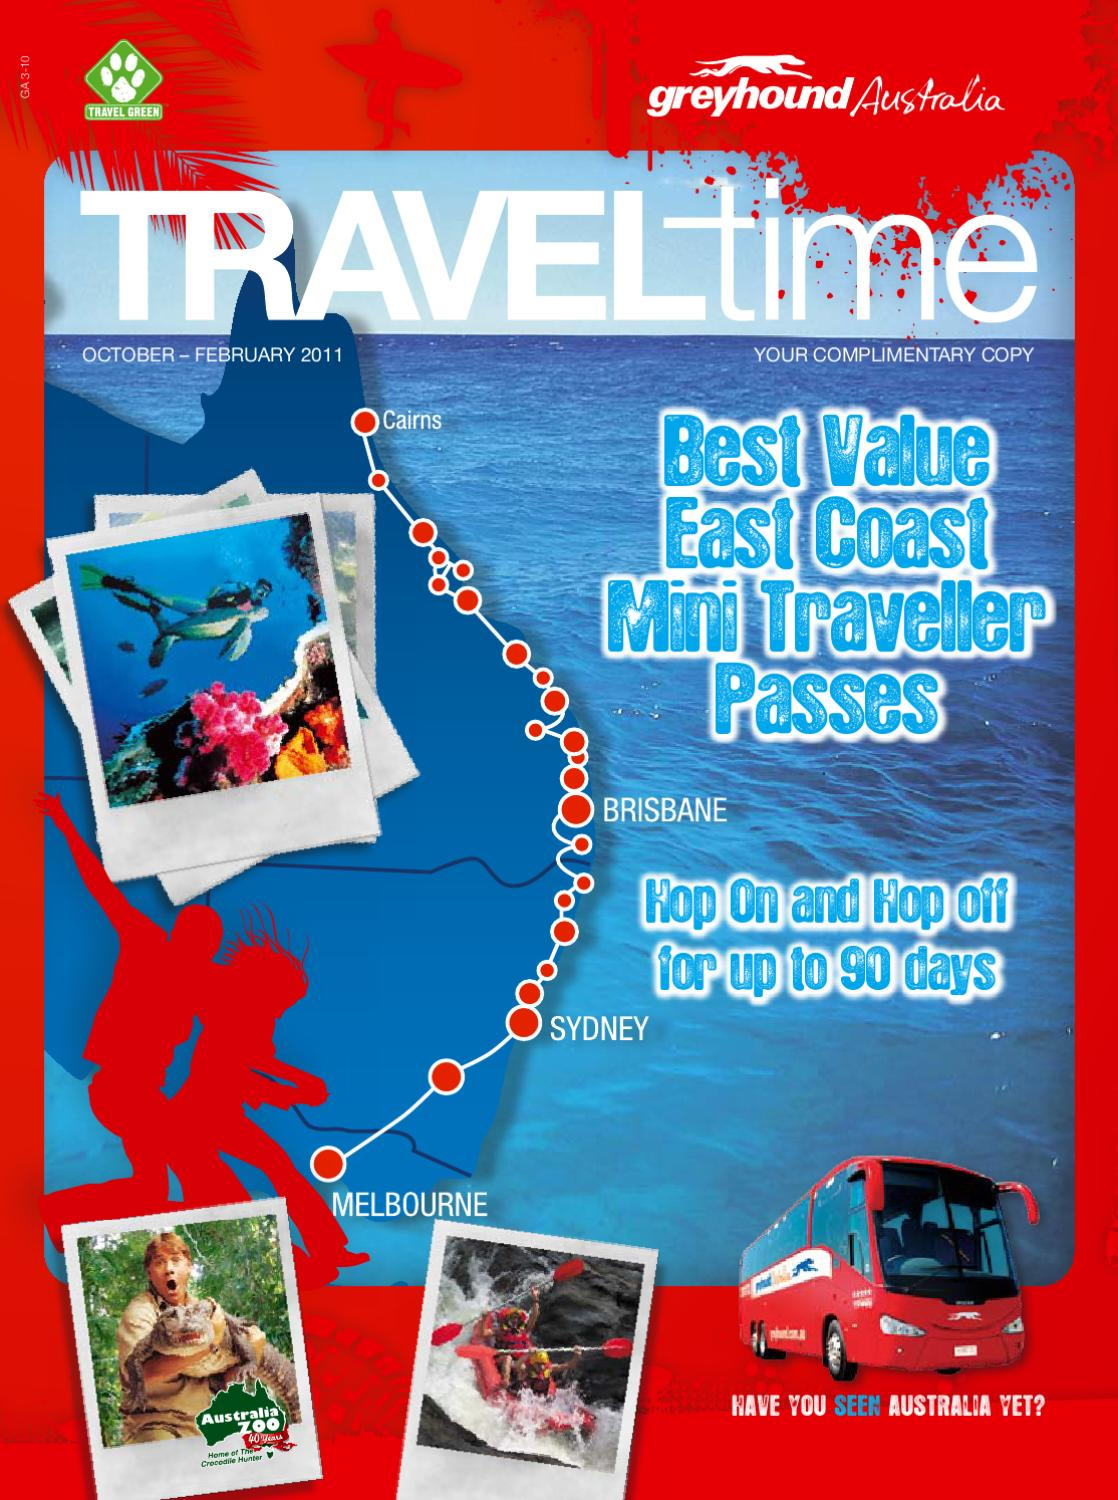 Click to reveal contact information phone 03 9864 1111 fax 03 9864 - Traveltime Magazine Summer 2010 By Ladies In Sport Publications Issuu